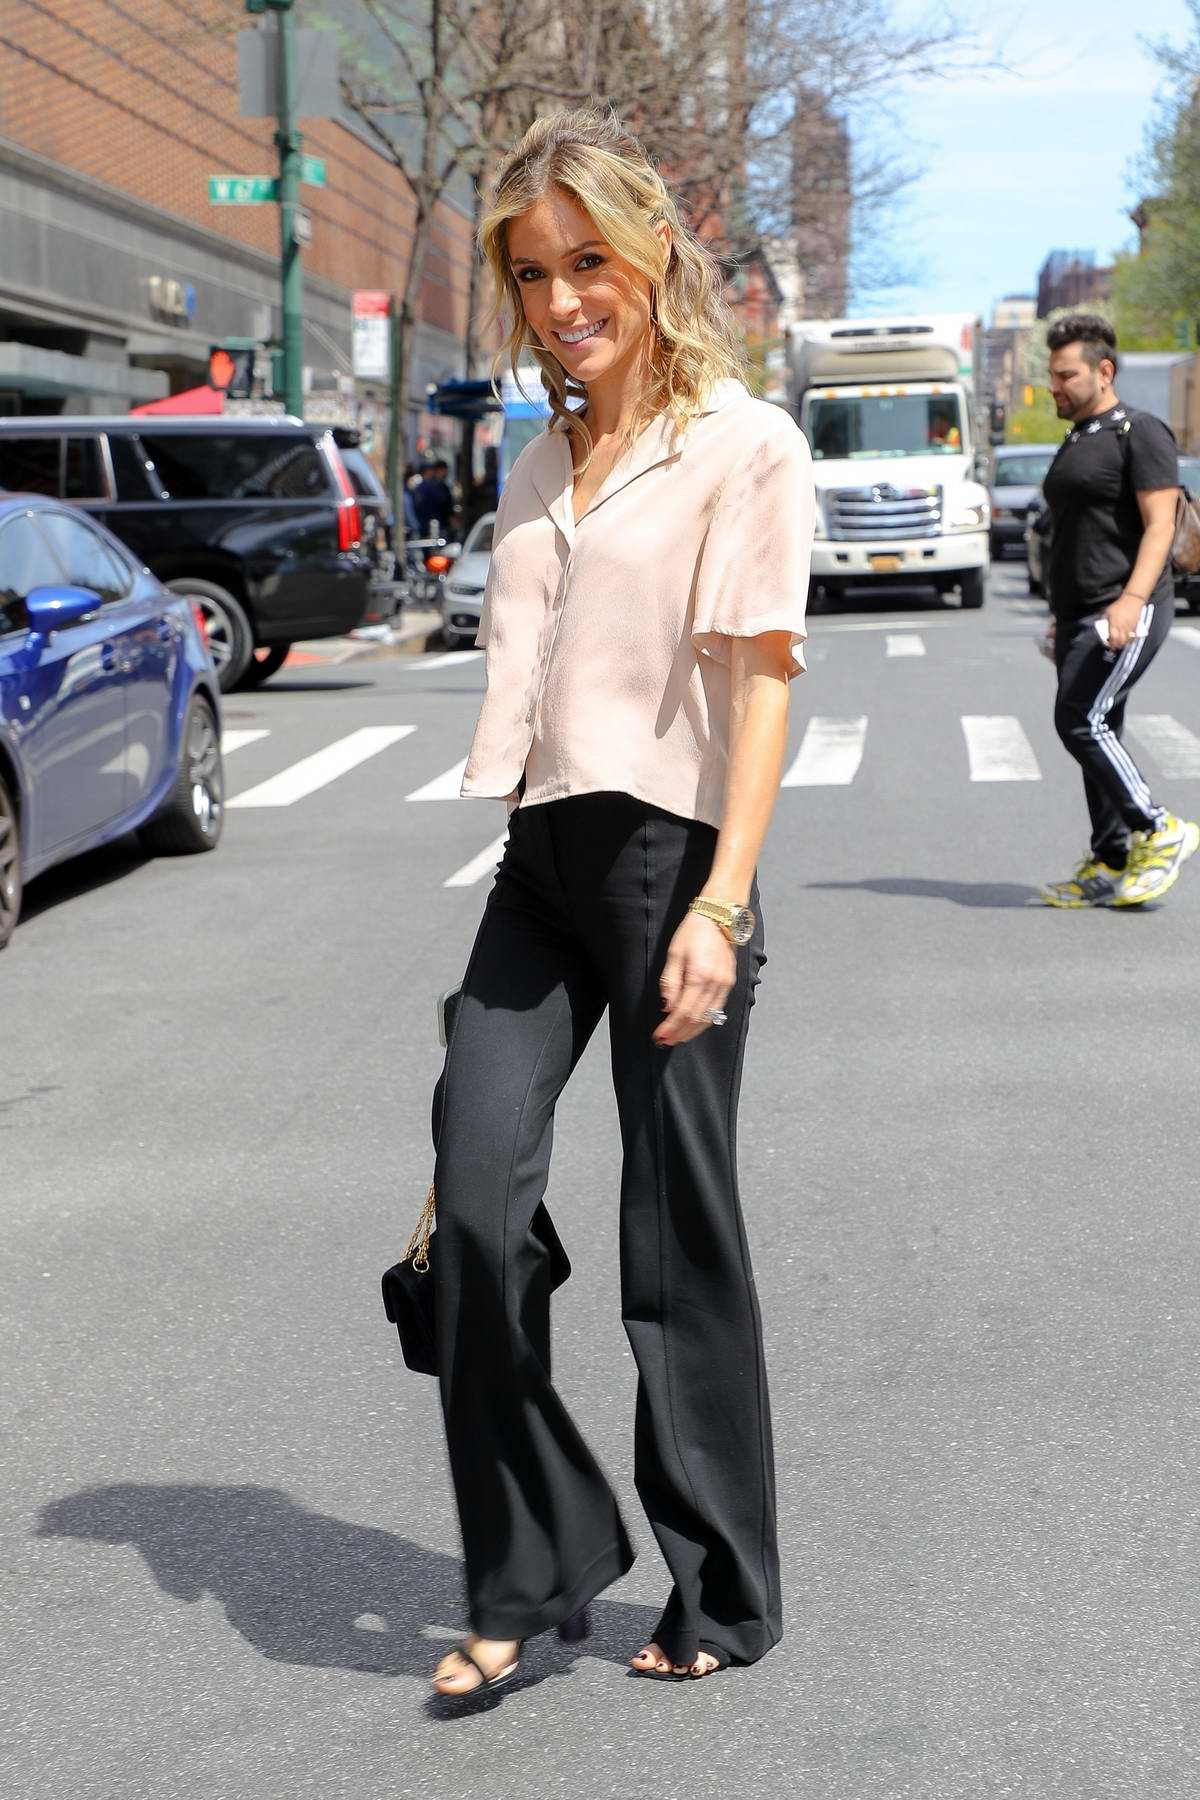 Kristin Cavallari smiles for the camera as she leaves 'On Air with Ryan Seacrest' in New York City